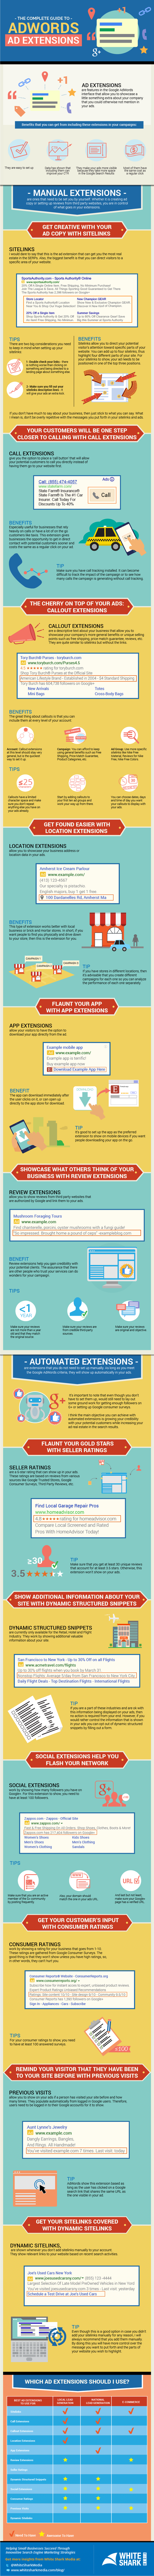 the_complete_guide_to_adwords_ad_extensions_infographic-1